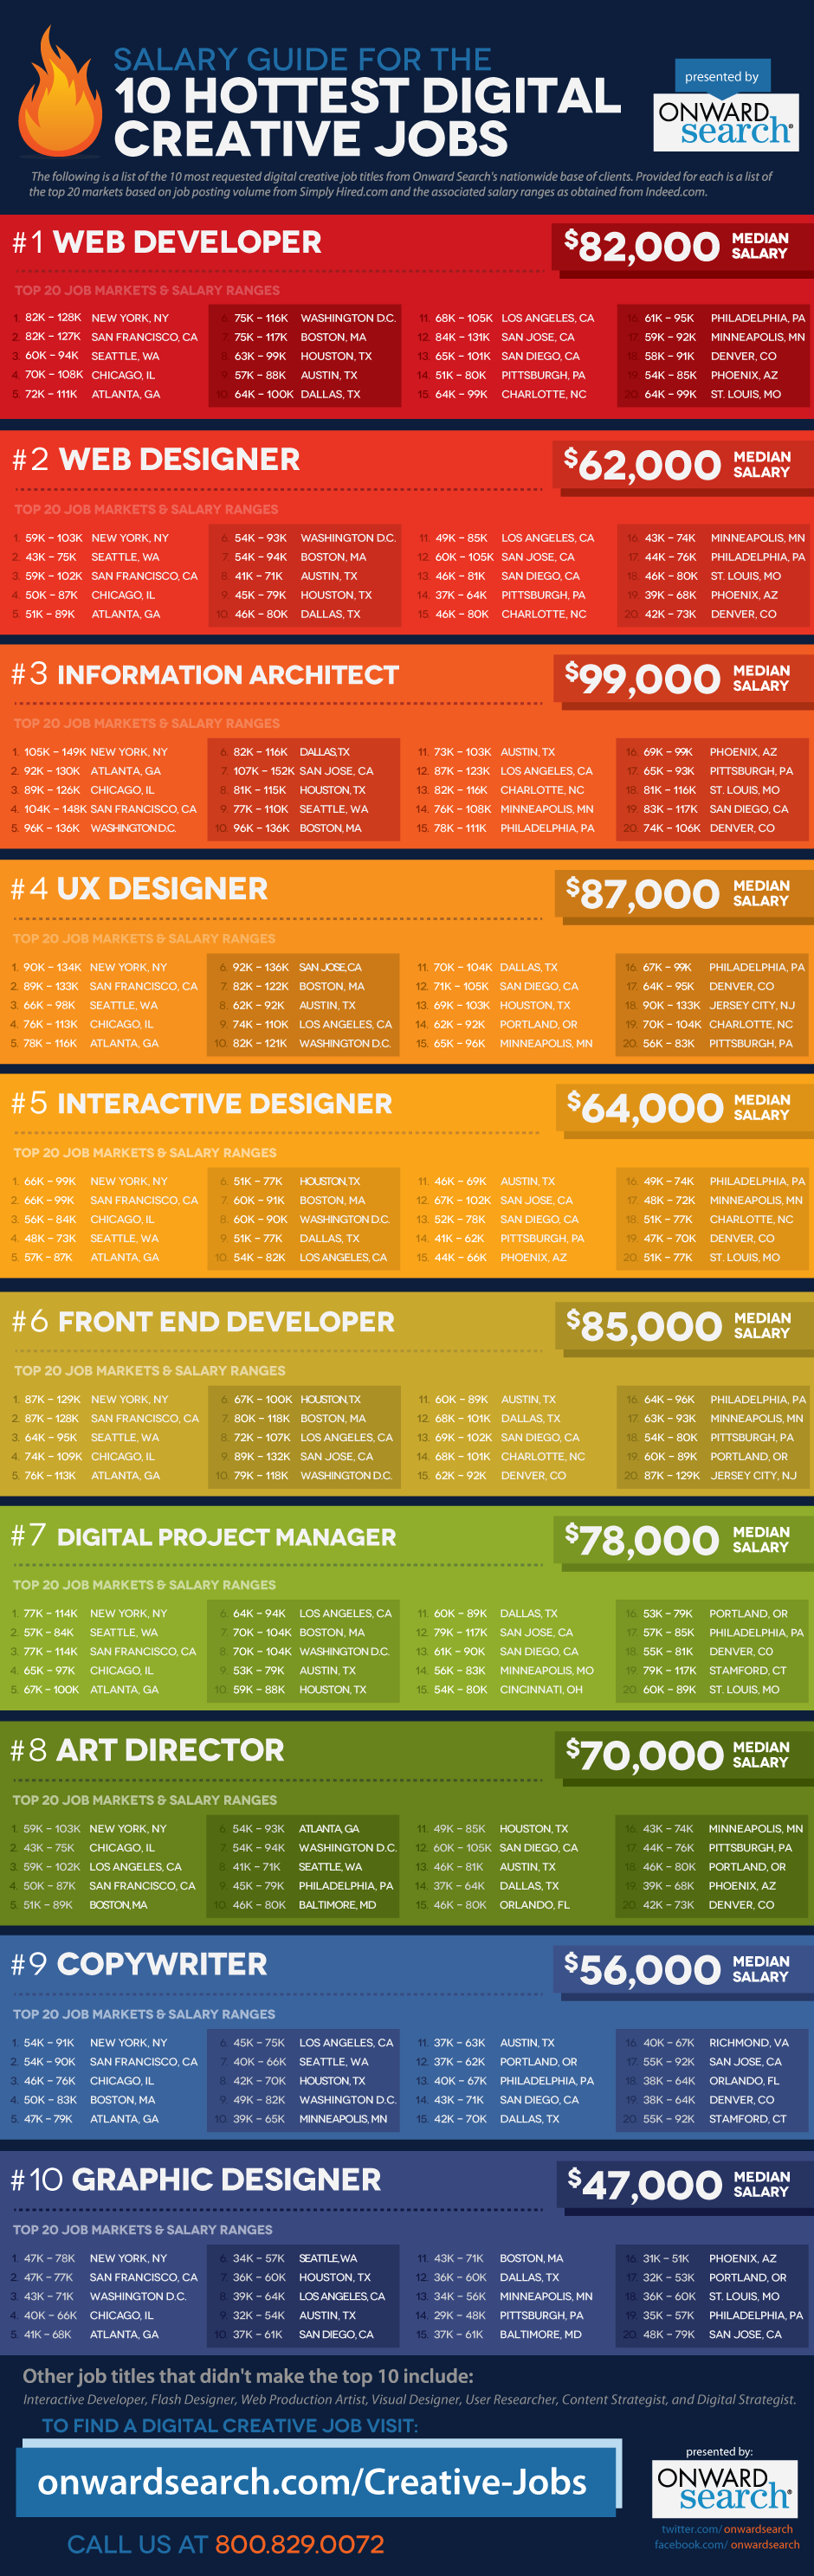 Digital-Creative-Jobs-Salary-Guide[1]